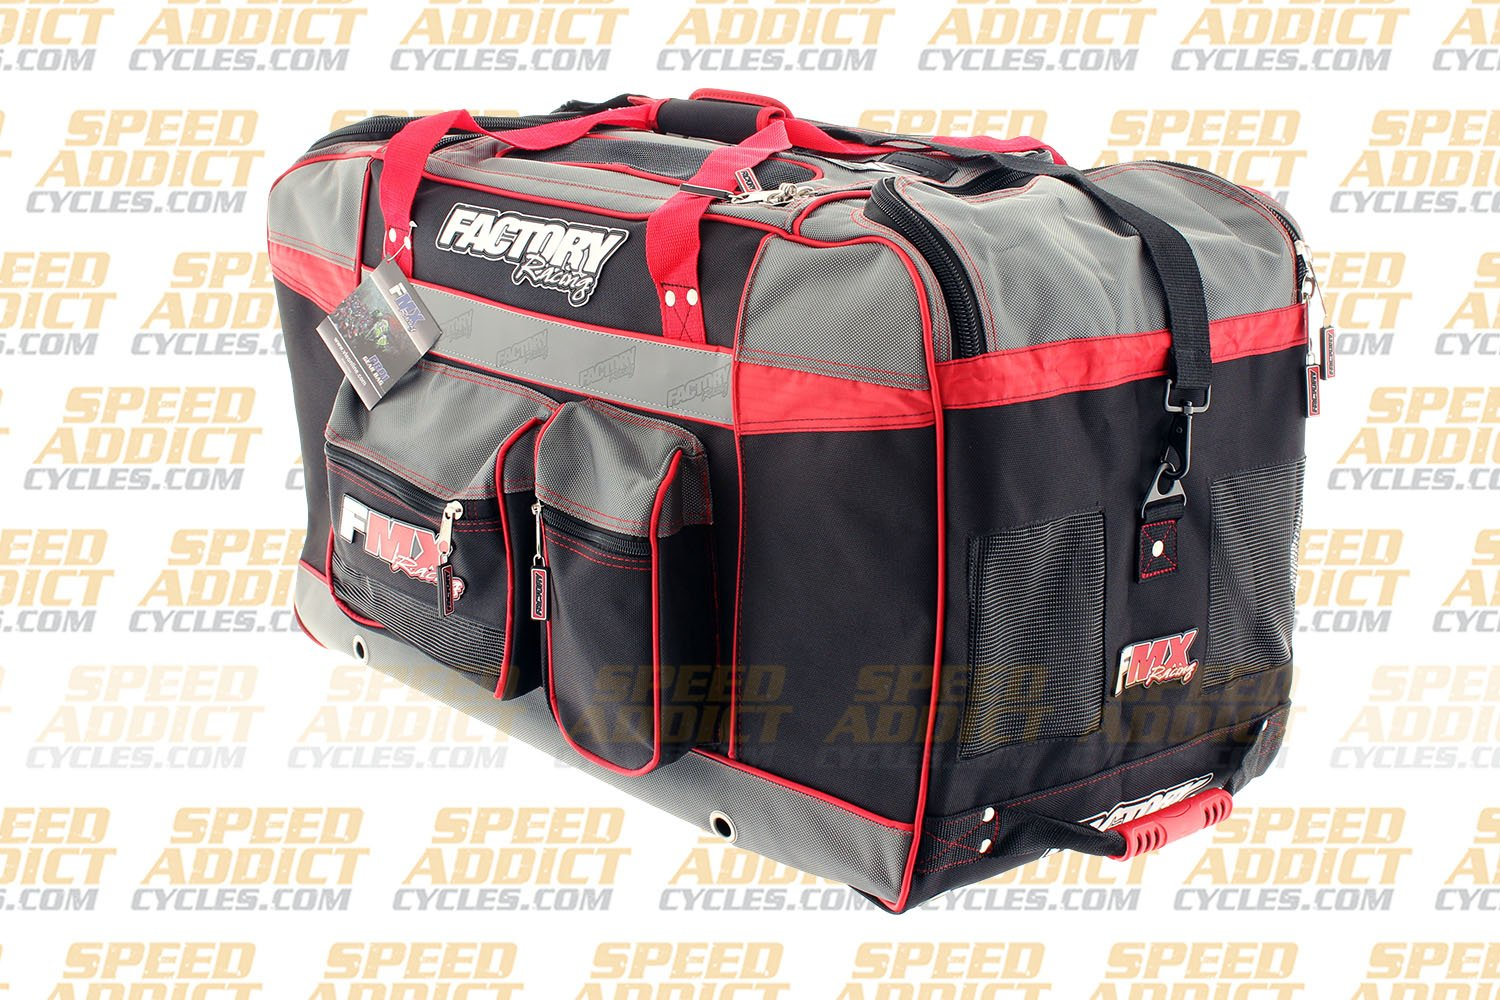 Factory FMX Motorcross Gear Bag XLarge Red by Factory Racing (Image #4)